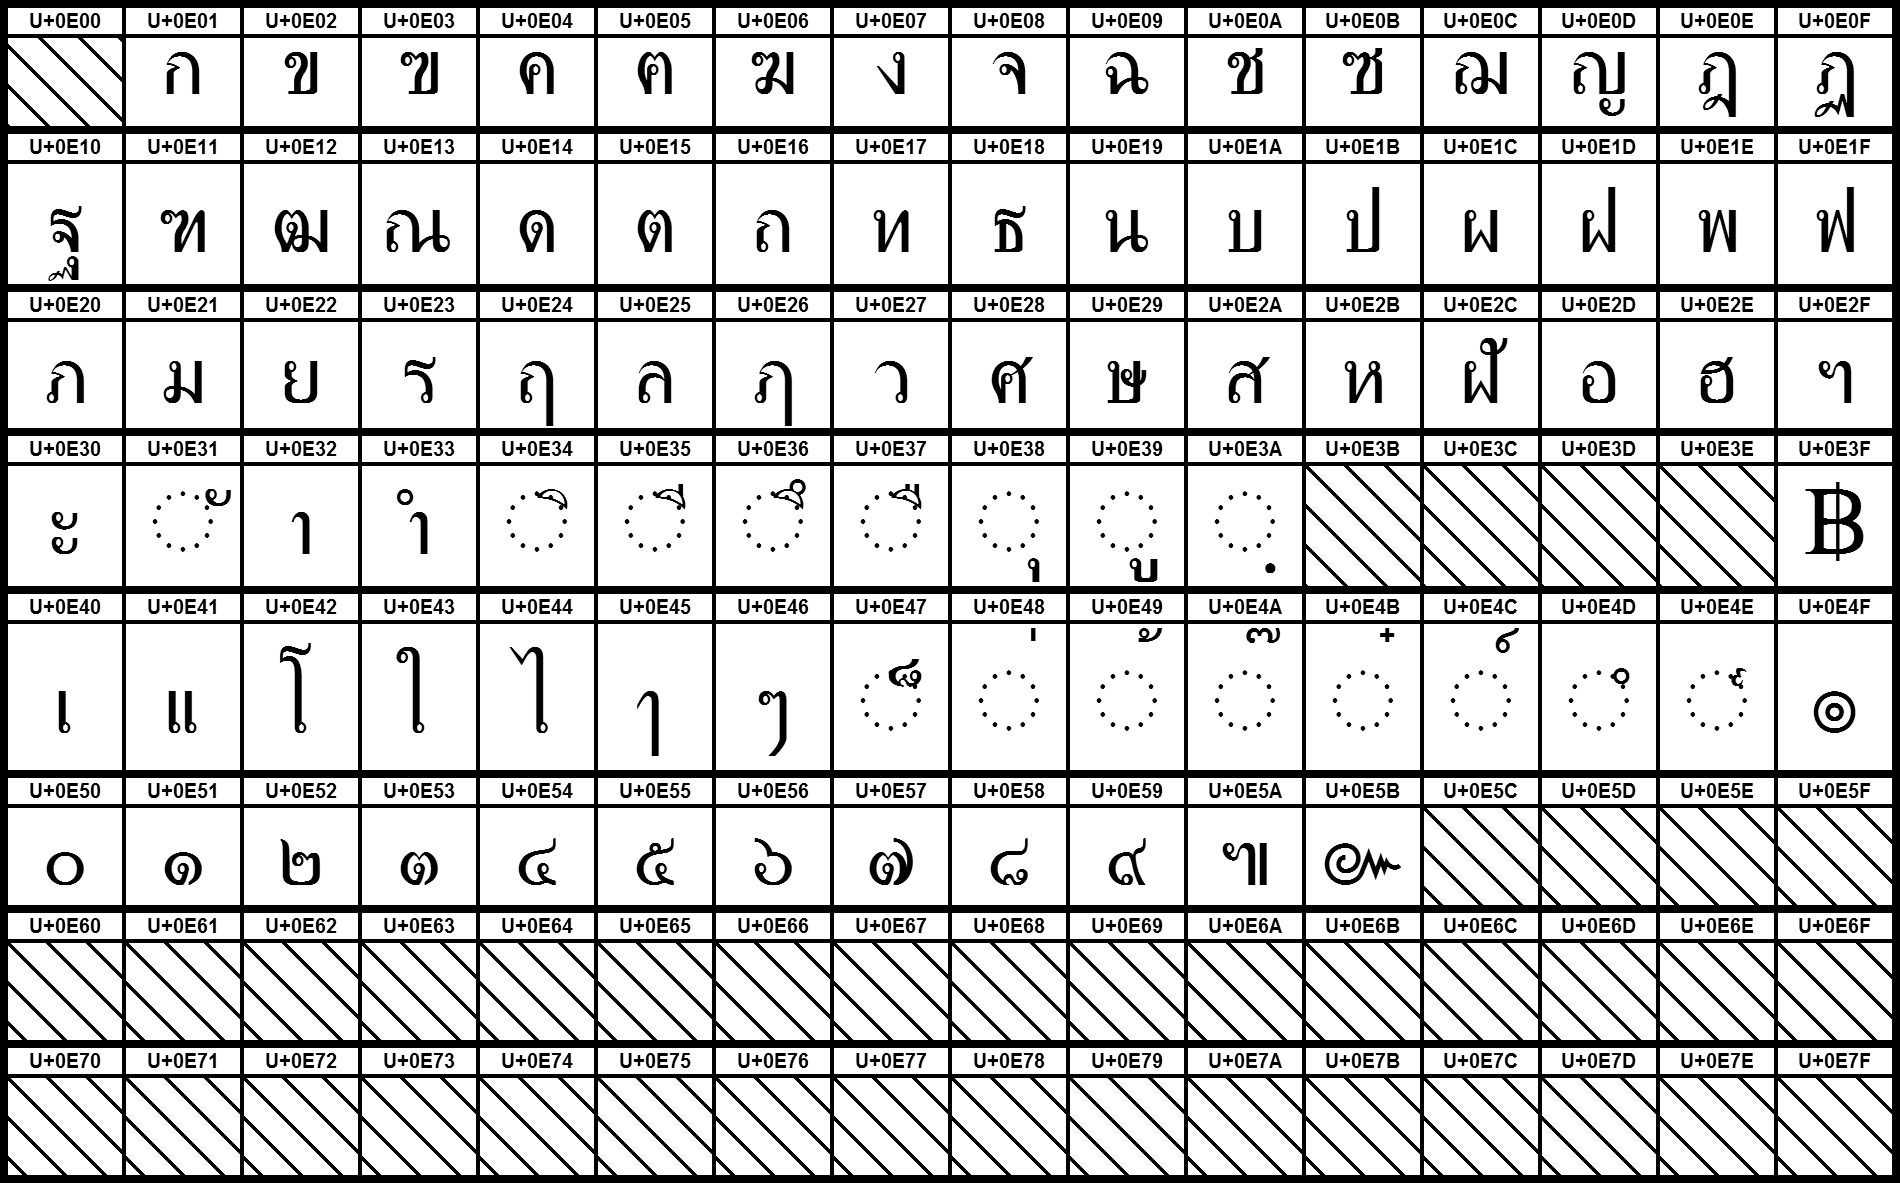 File:UCB Thai.png - Wikimedia Commons